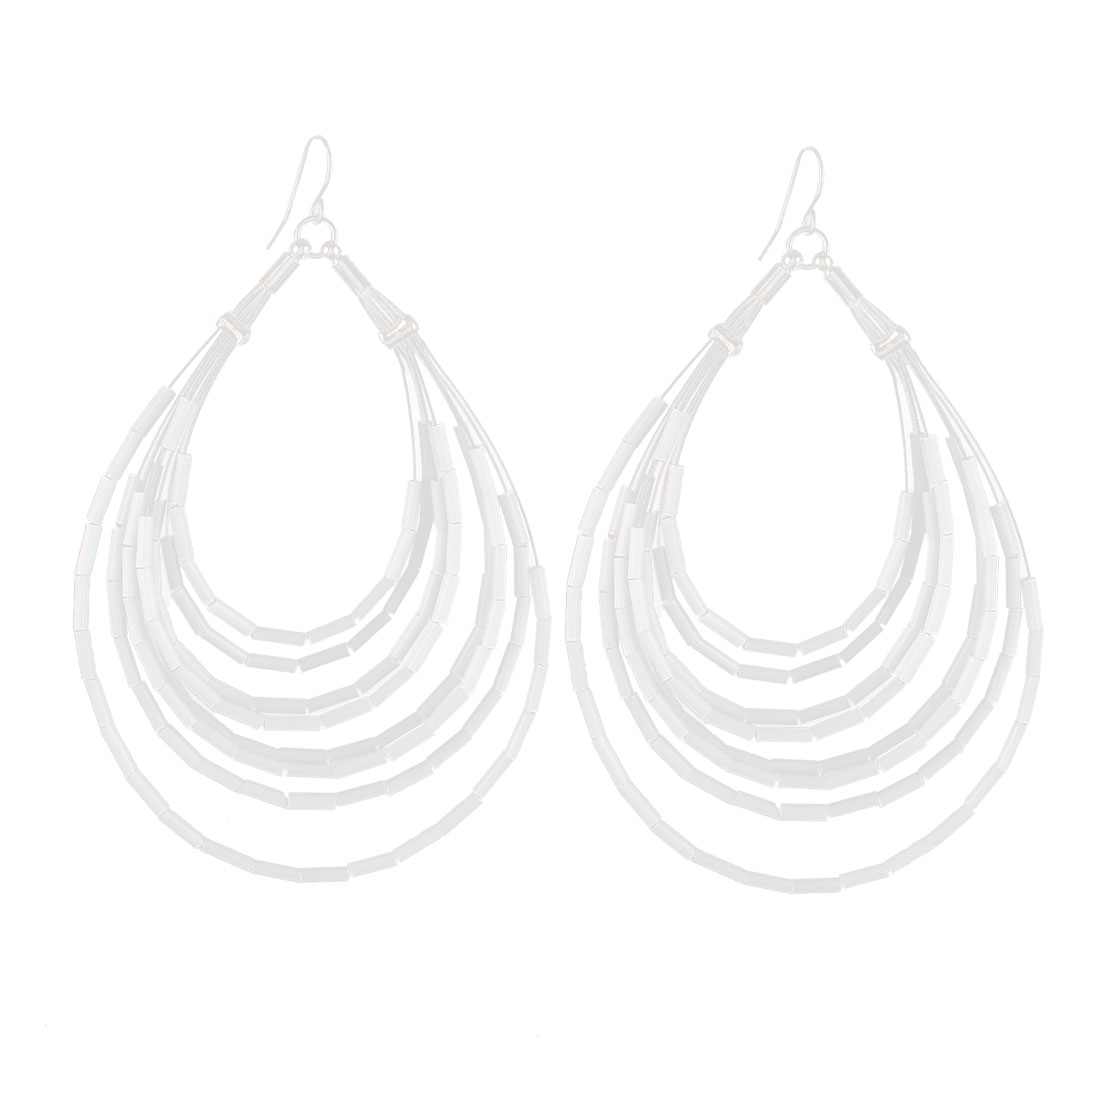 "3.7"" Length Silver Tone White Plastic Hollow Tubes Detail Waterdrop Shape Dangling Pendant Metal Fish Hook Earrings Earbob for Lady Women"